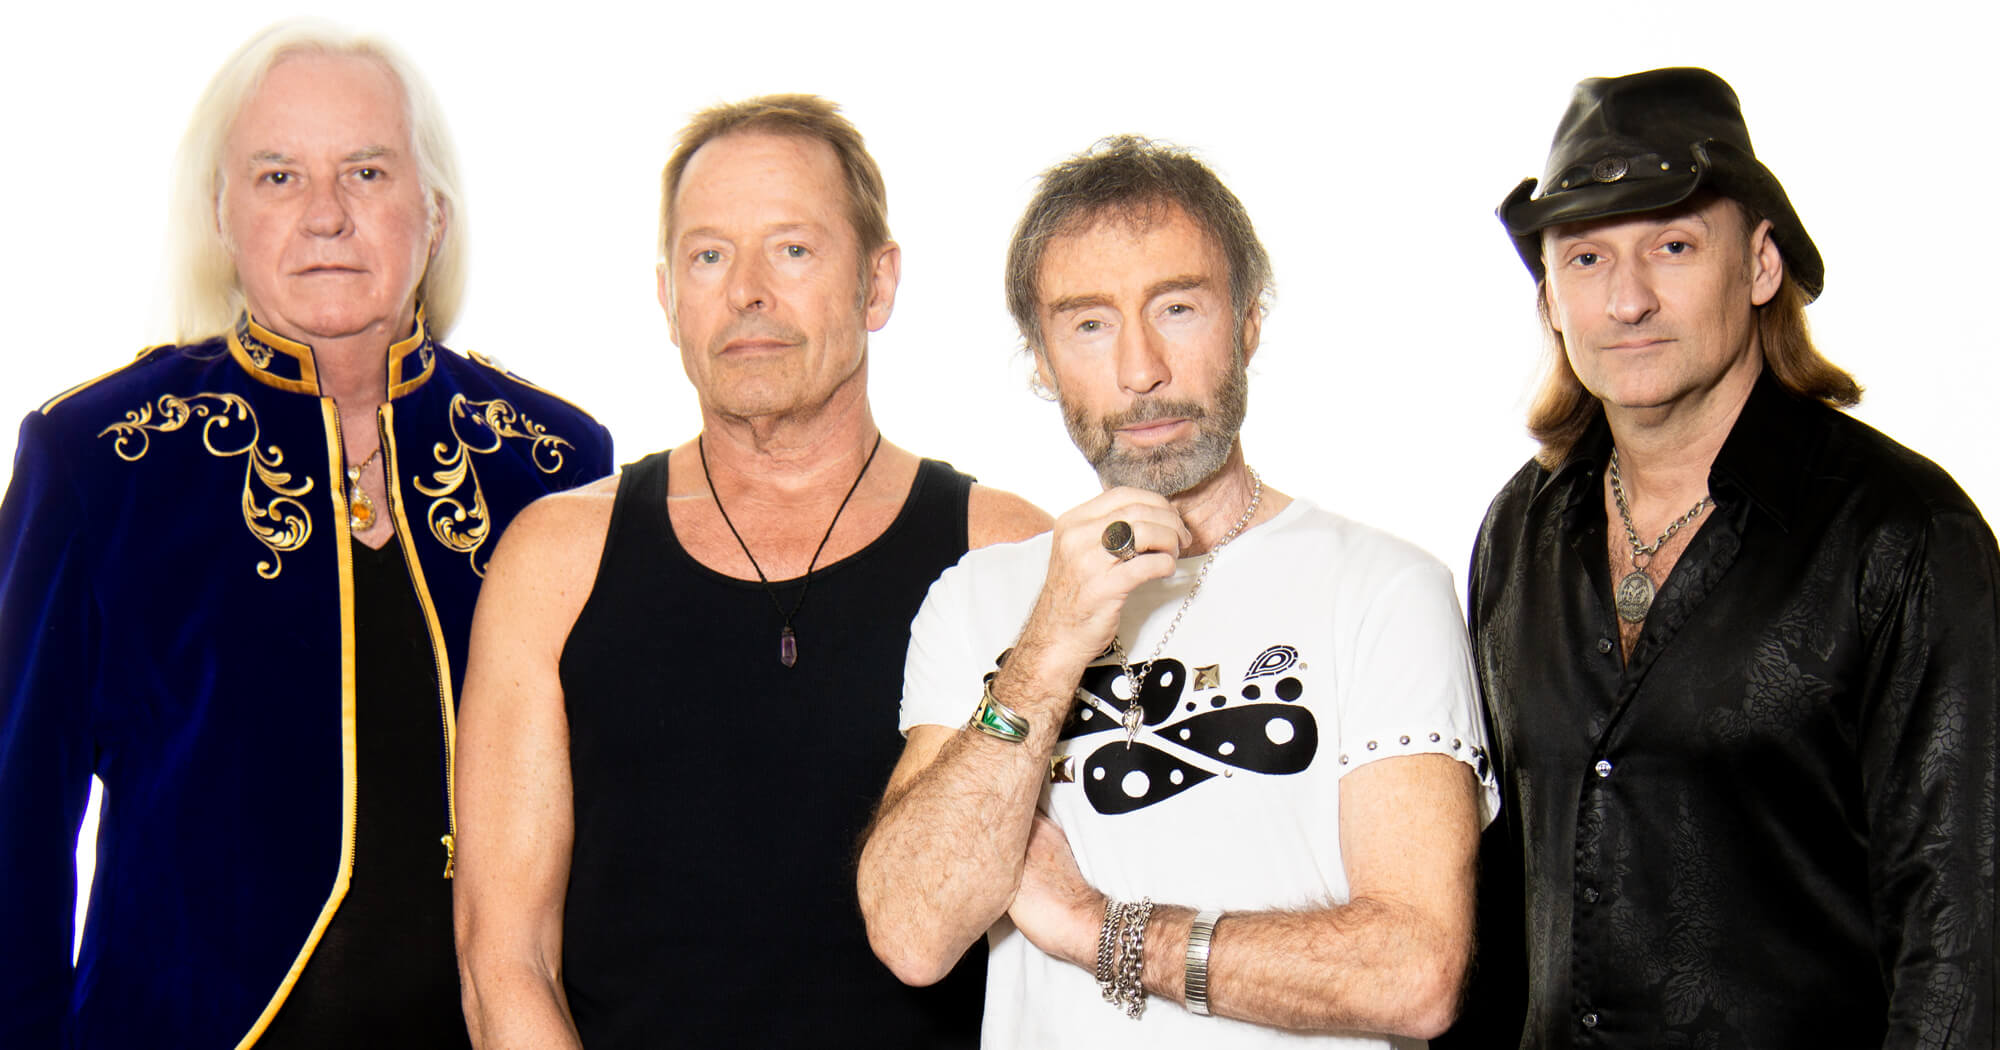 Bad Company will perform at the Annual Festival of the Lakes (Hammond, Indiana) on Saturday, July 20, 2019